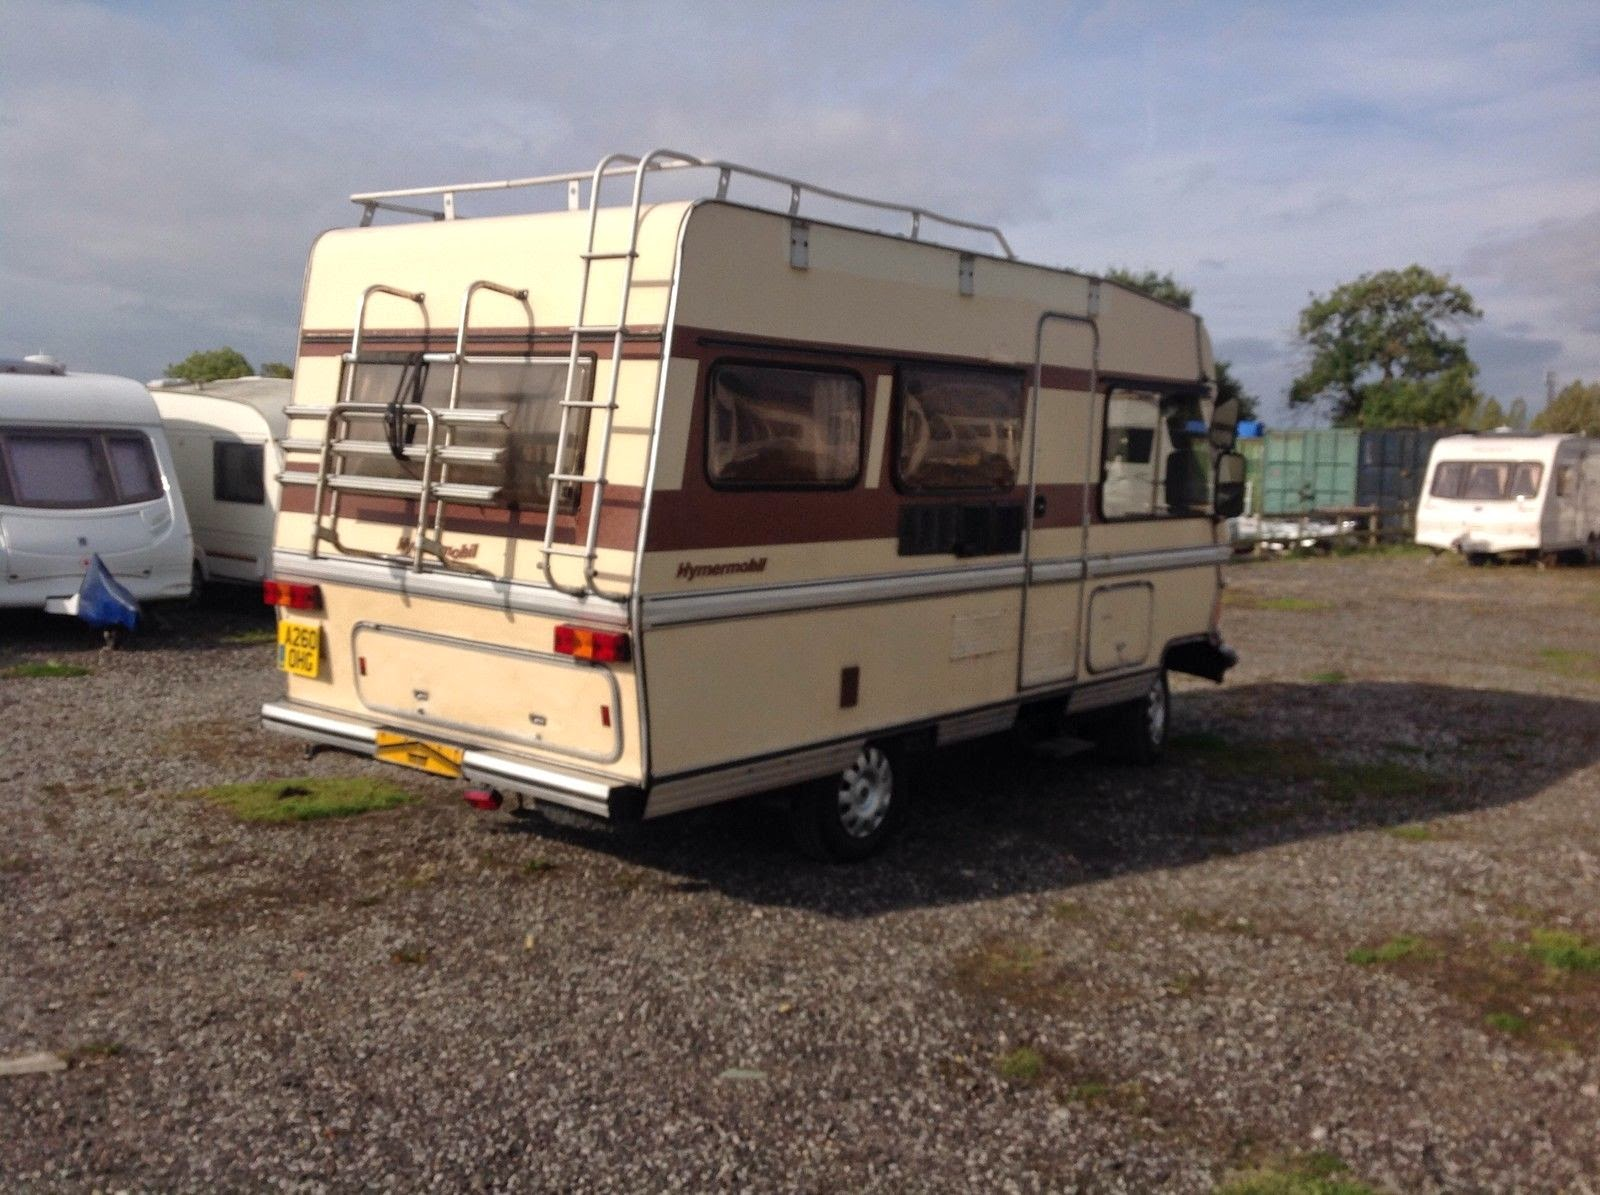 Sportsmobile 4x4 For Sale >> Used RVs 1983 Hymer Motorhome for Sale For Sale by Owner